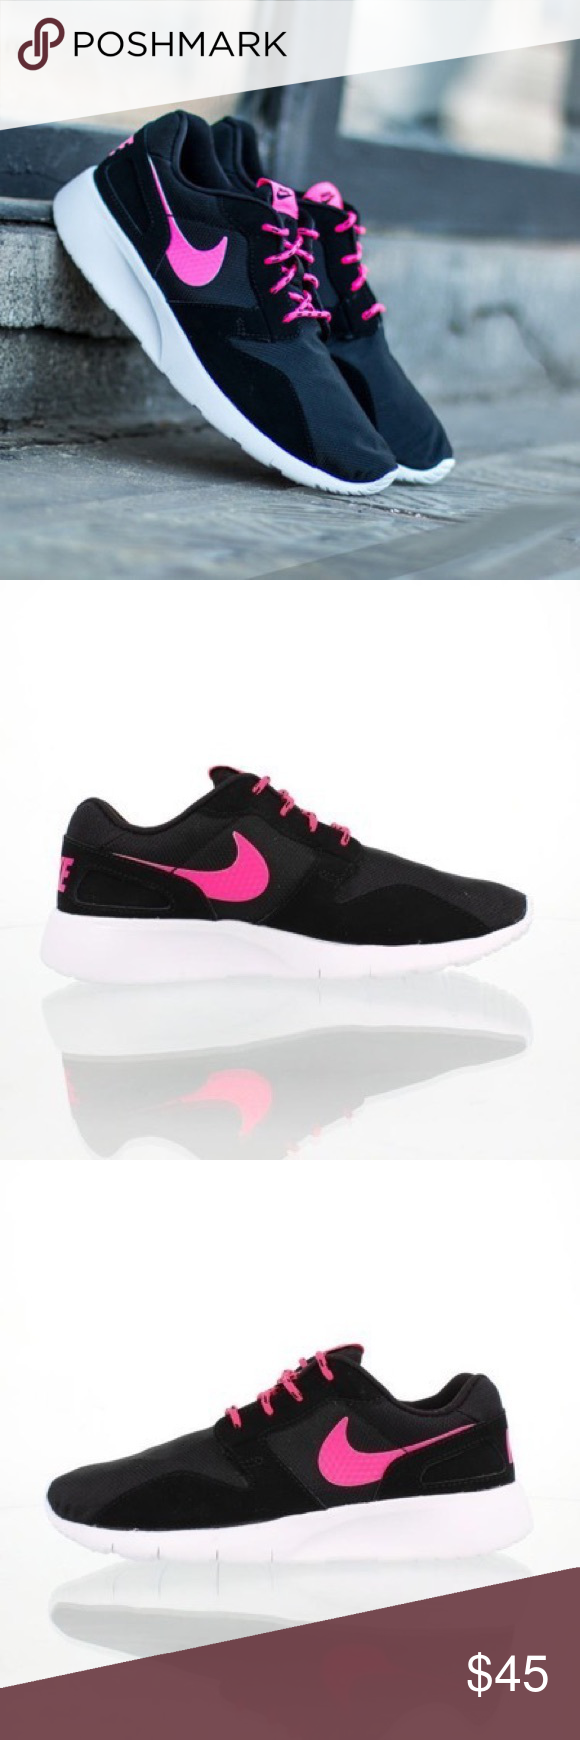 black and pink nike shoes sportswear brands charts 881161